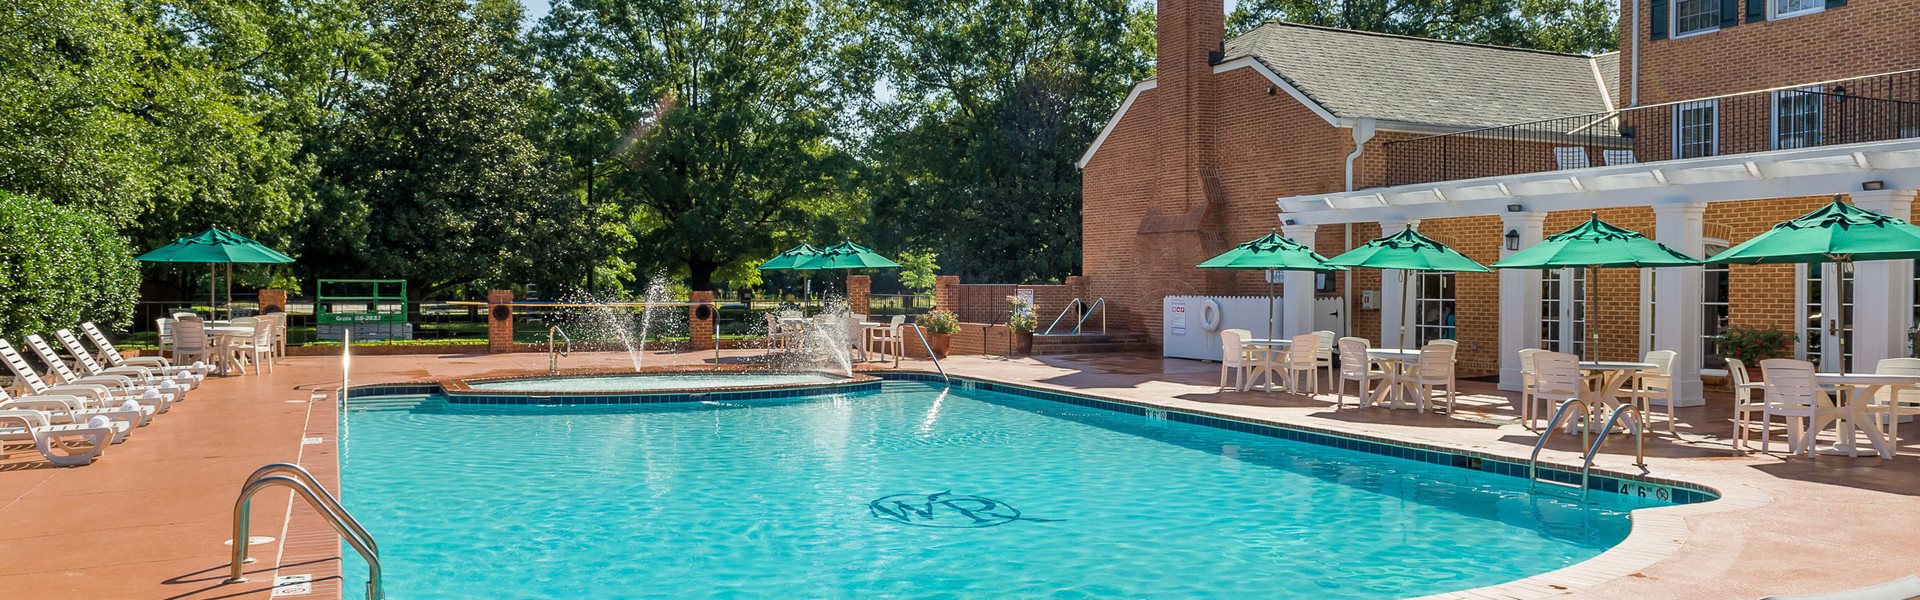 Hotels with Pools in Williamsburg Virginia | Westgate Historic Williamsburg Resort